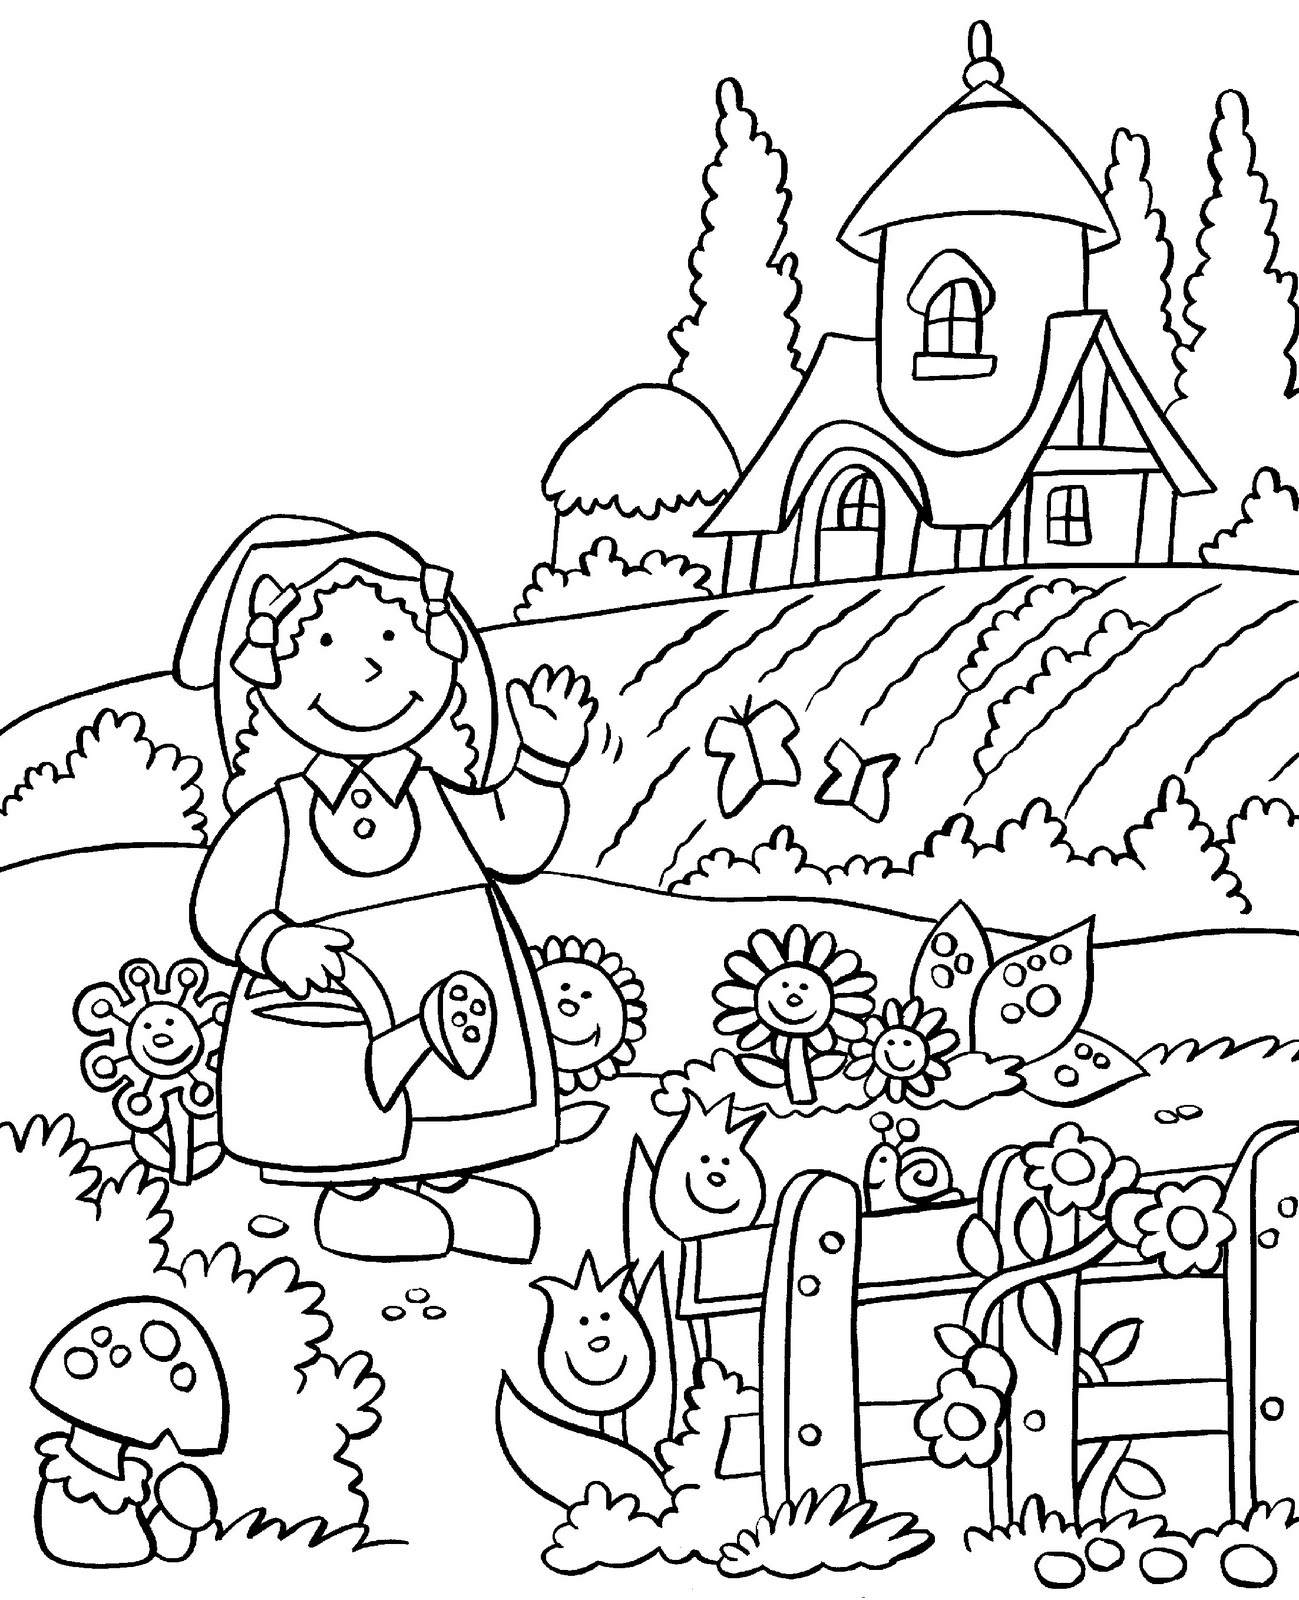 garden coloring pages gardening coloring pages to download and print for free coloring garden pages